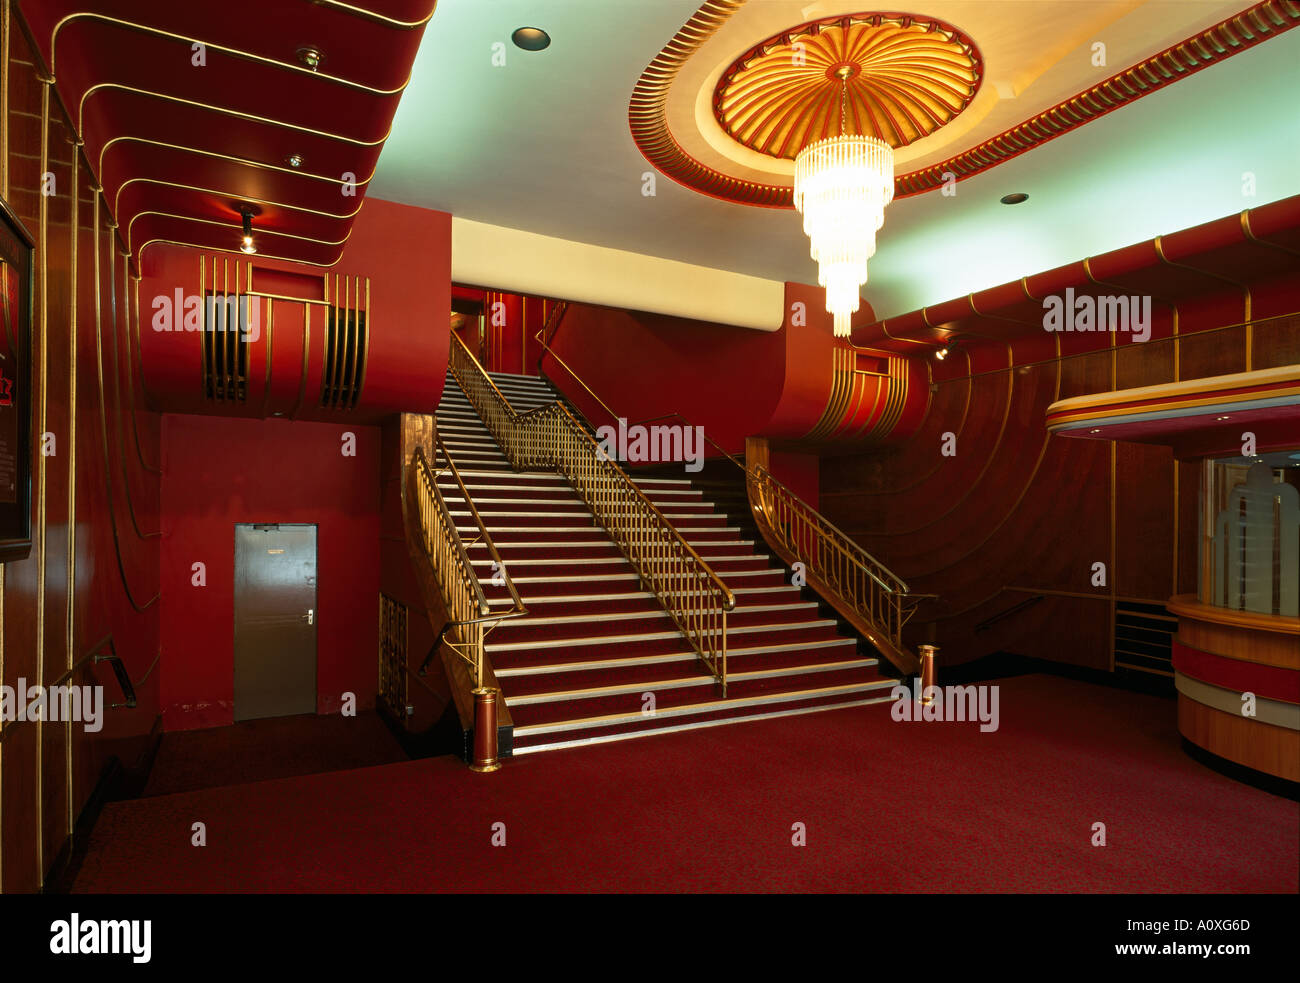 art deco cinema interior stock photos & art deco cinema interior